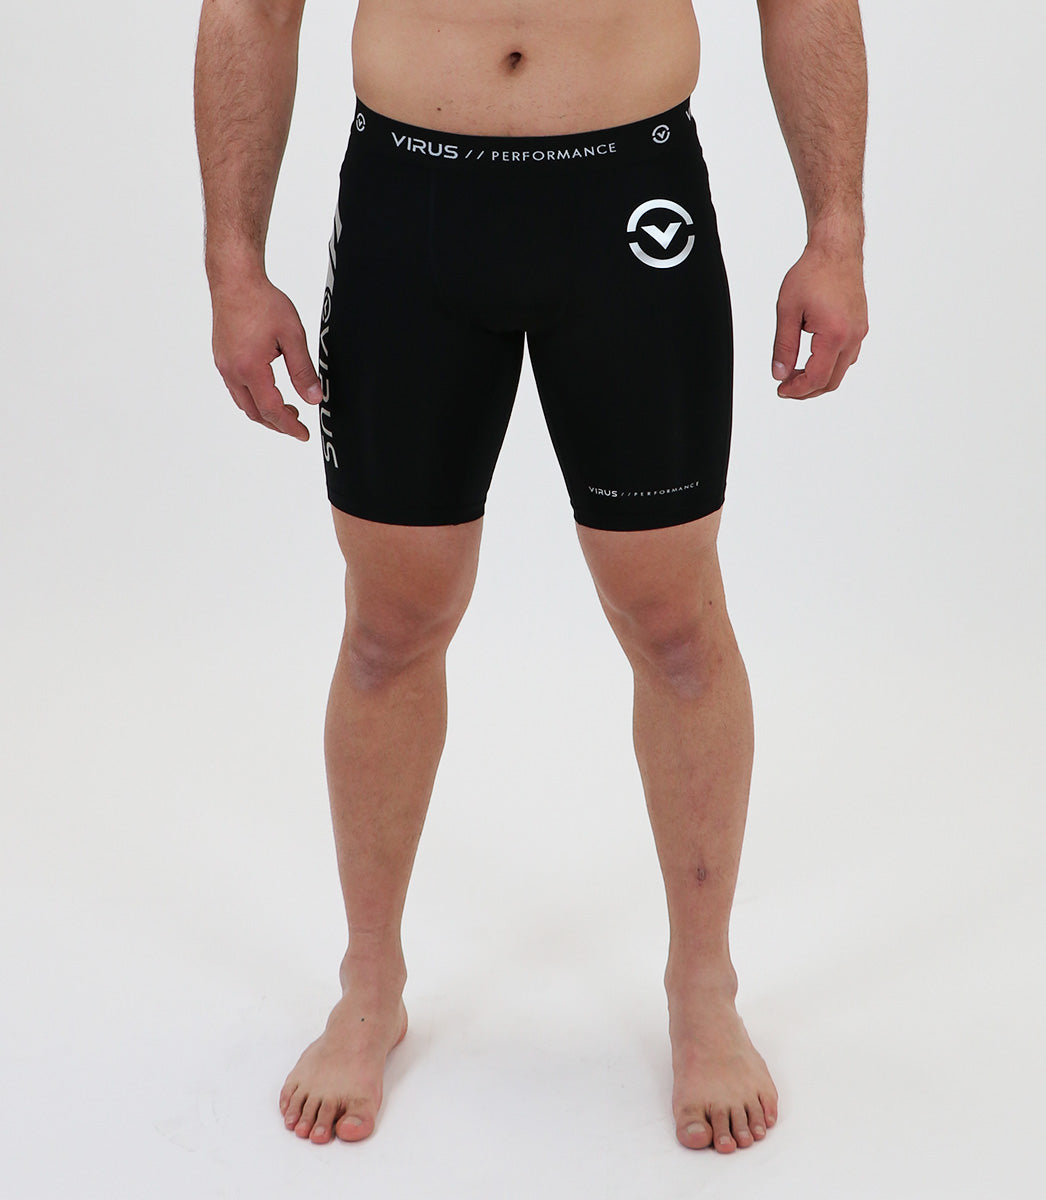 Co7 | CoolJade™ Compression Shorts | Black/Silver